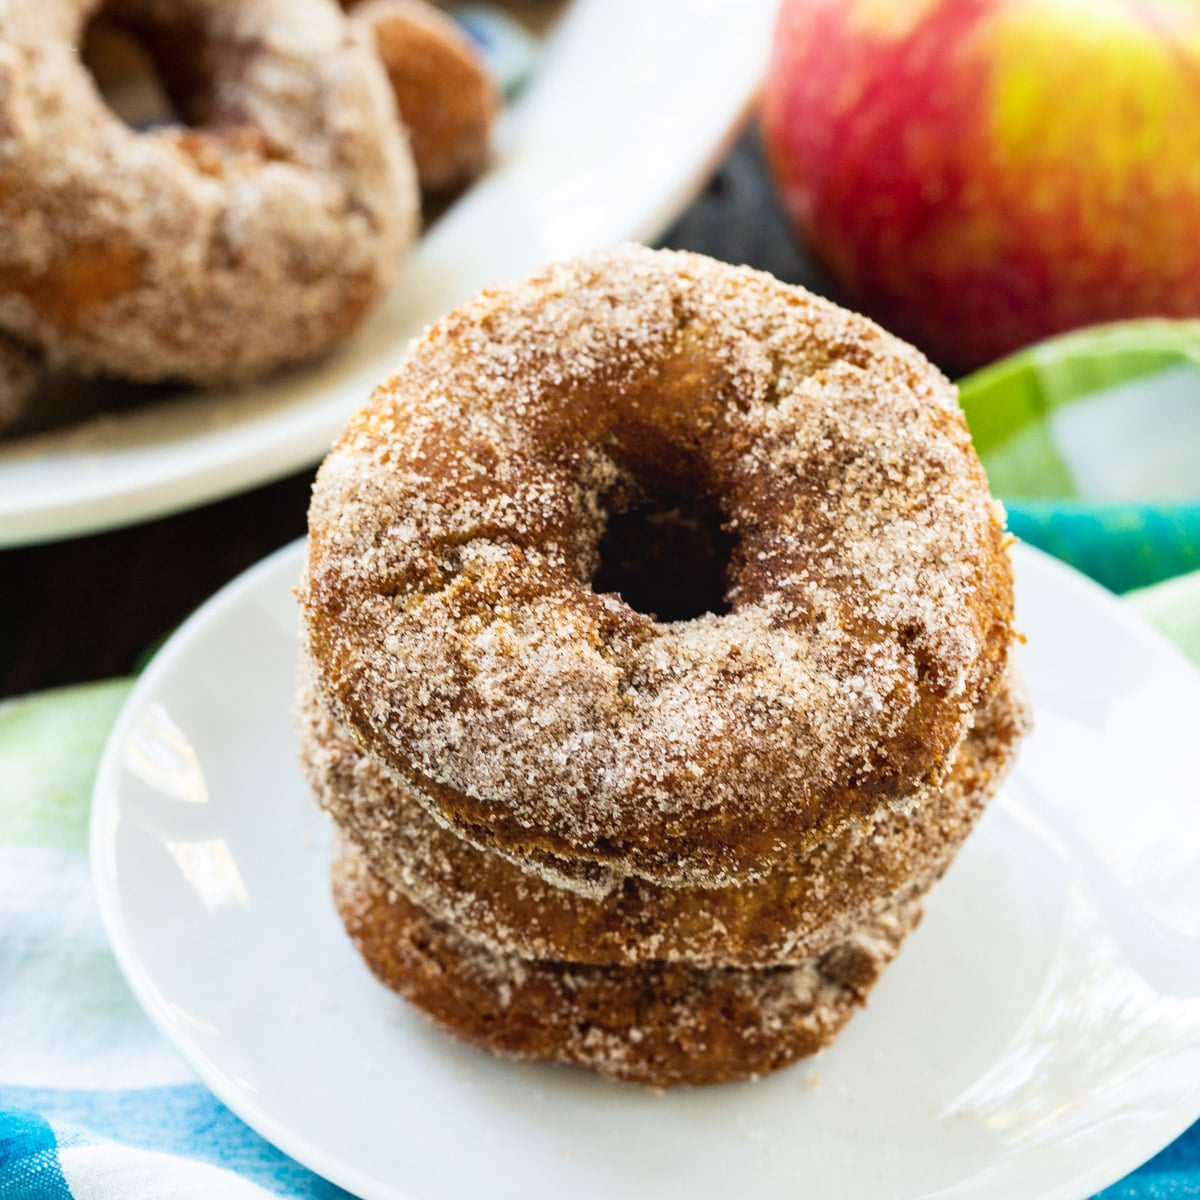 Apple Cider Doughnuts stacked on a plate.